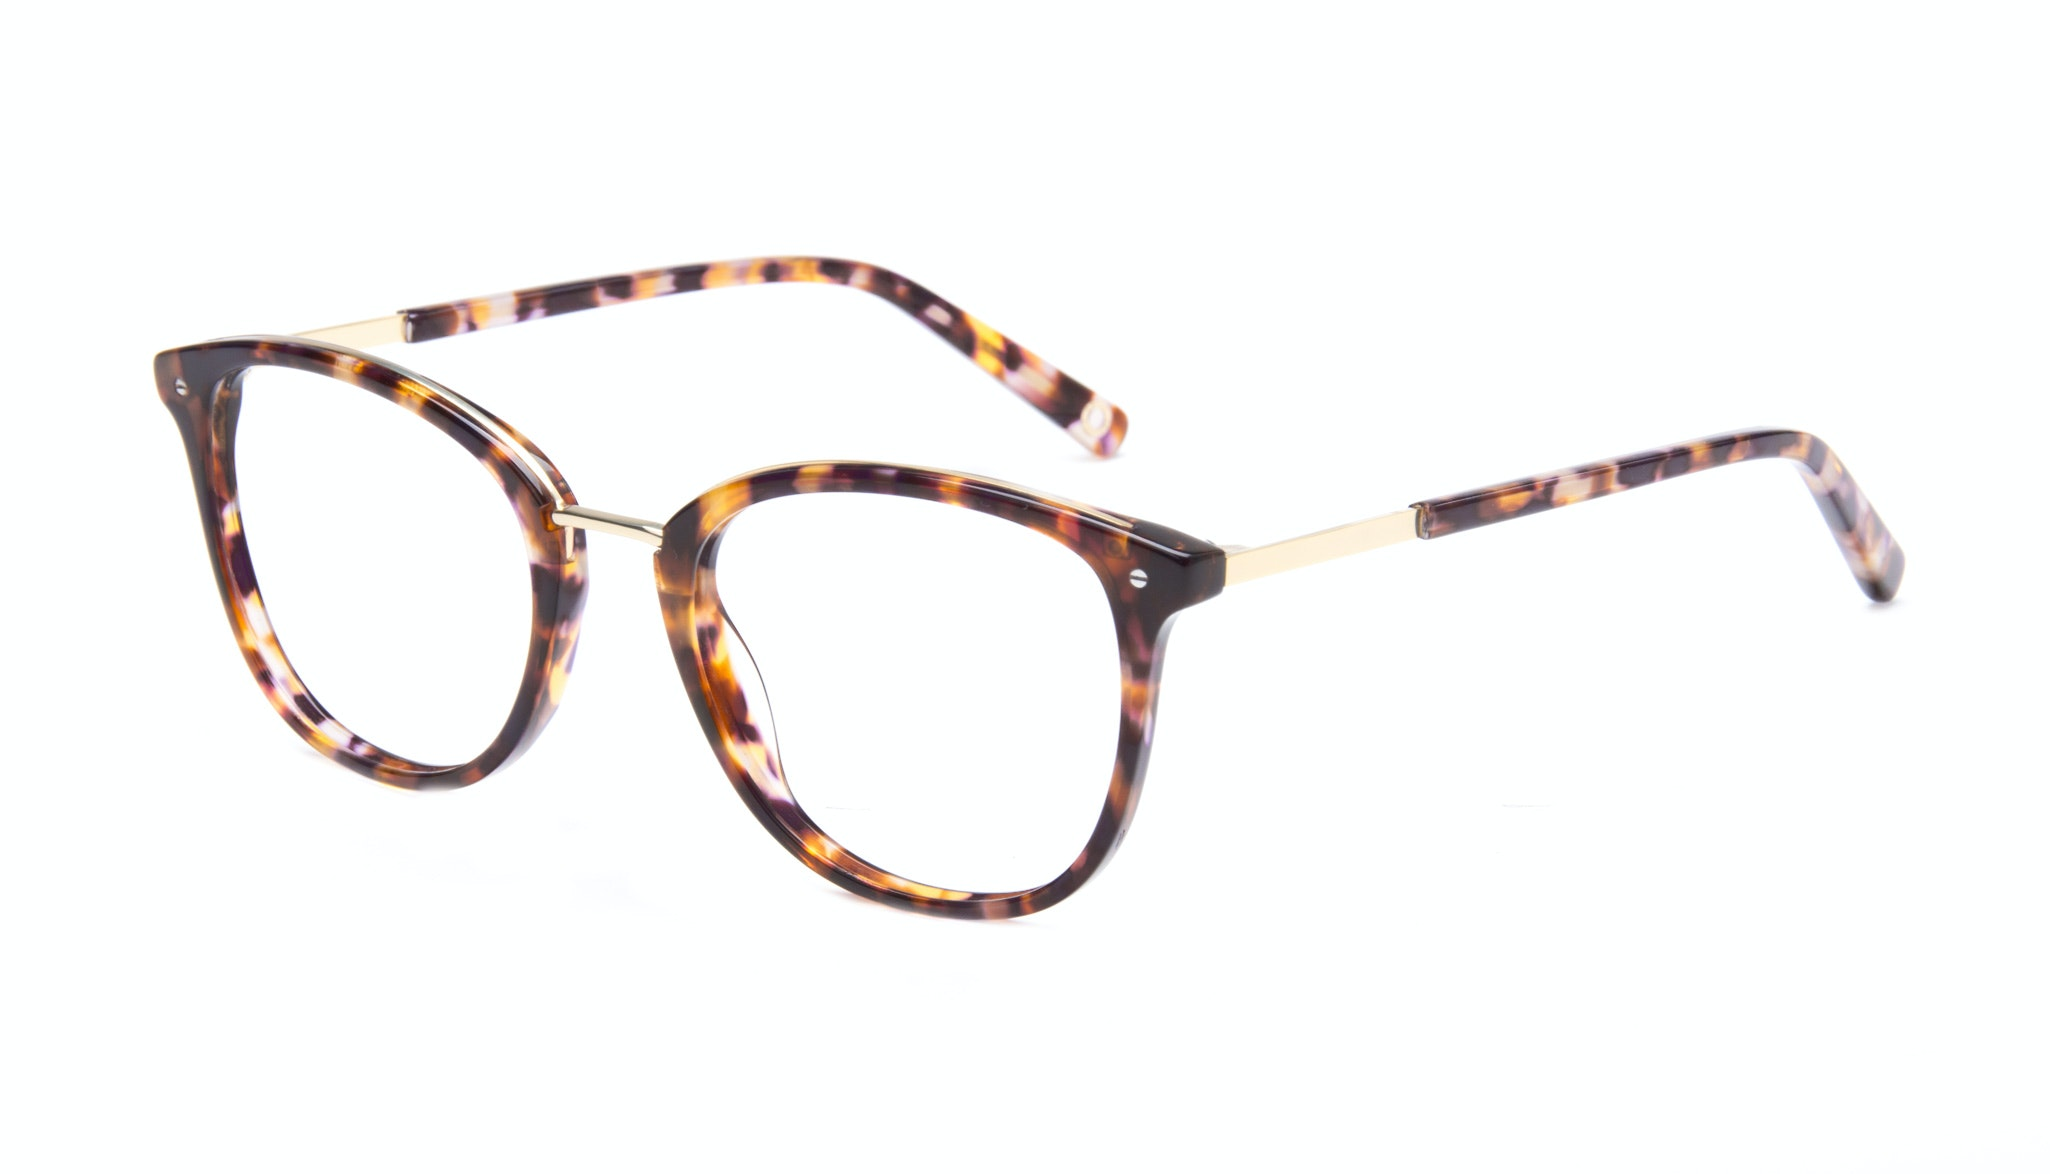 Affordable Fashion Glasses Square Round Eyeglasses Women Bella Dark Tortoise Tilt